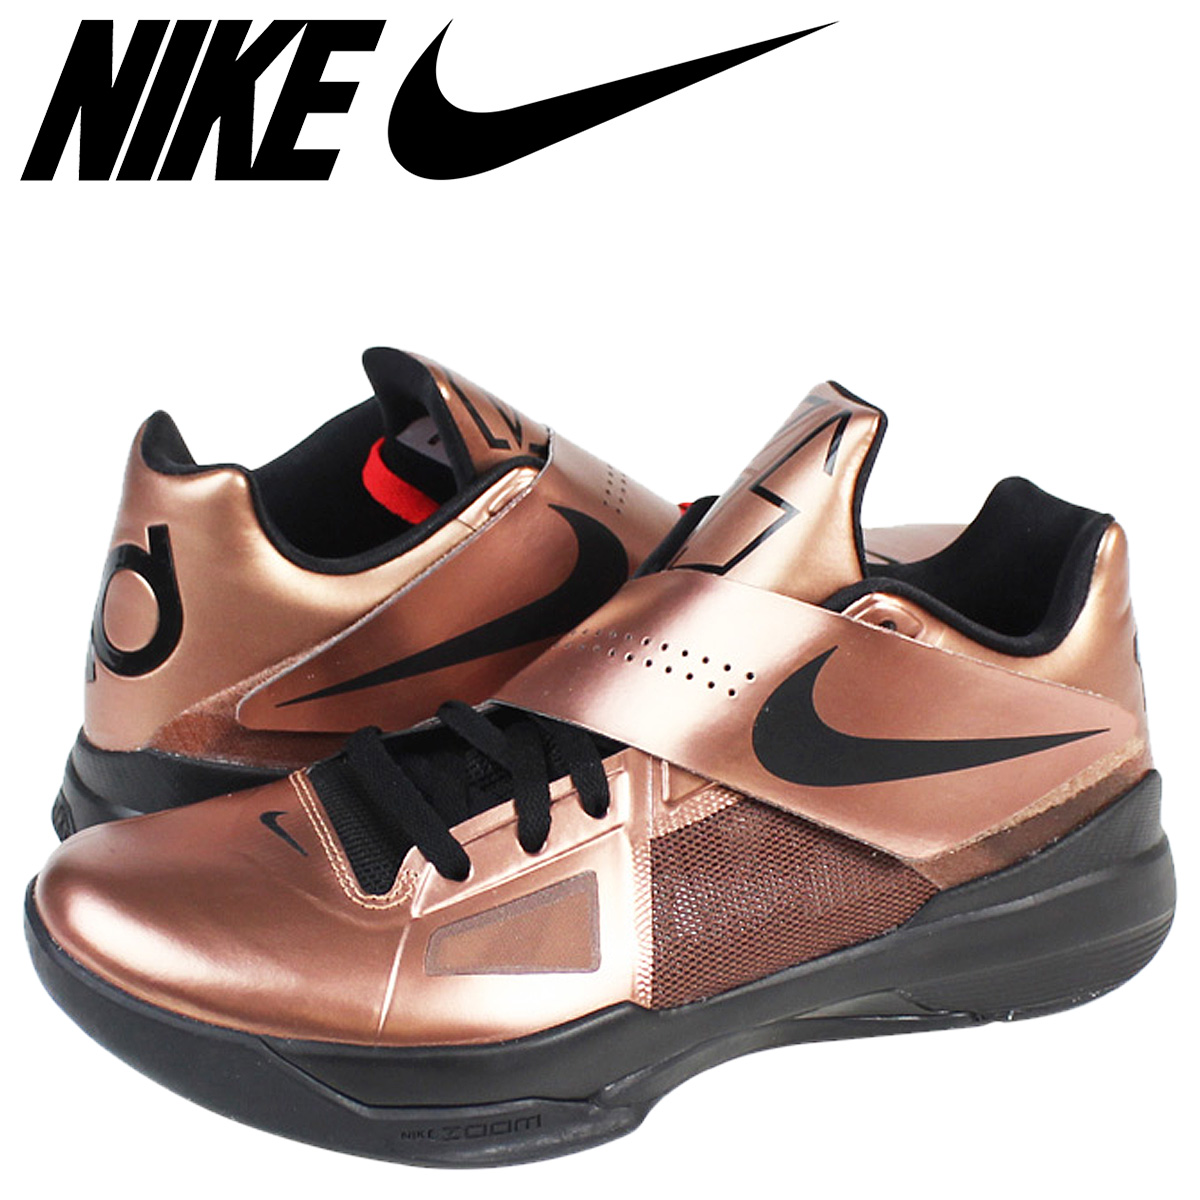 4a23a13e8d7 Nike NIKE zoom sneakers ZOOM KD IV CHRISTMAS EDITION Kevin Durant 4  Christmas limited edition 473679-700 men s metallic copper